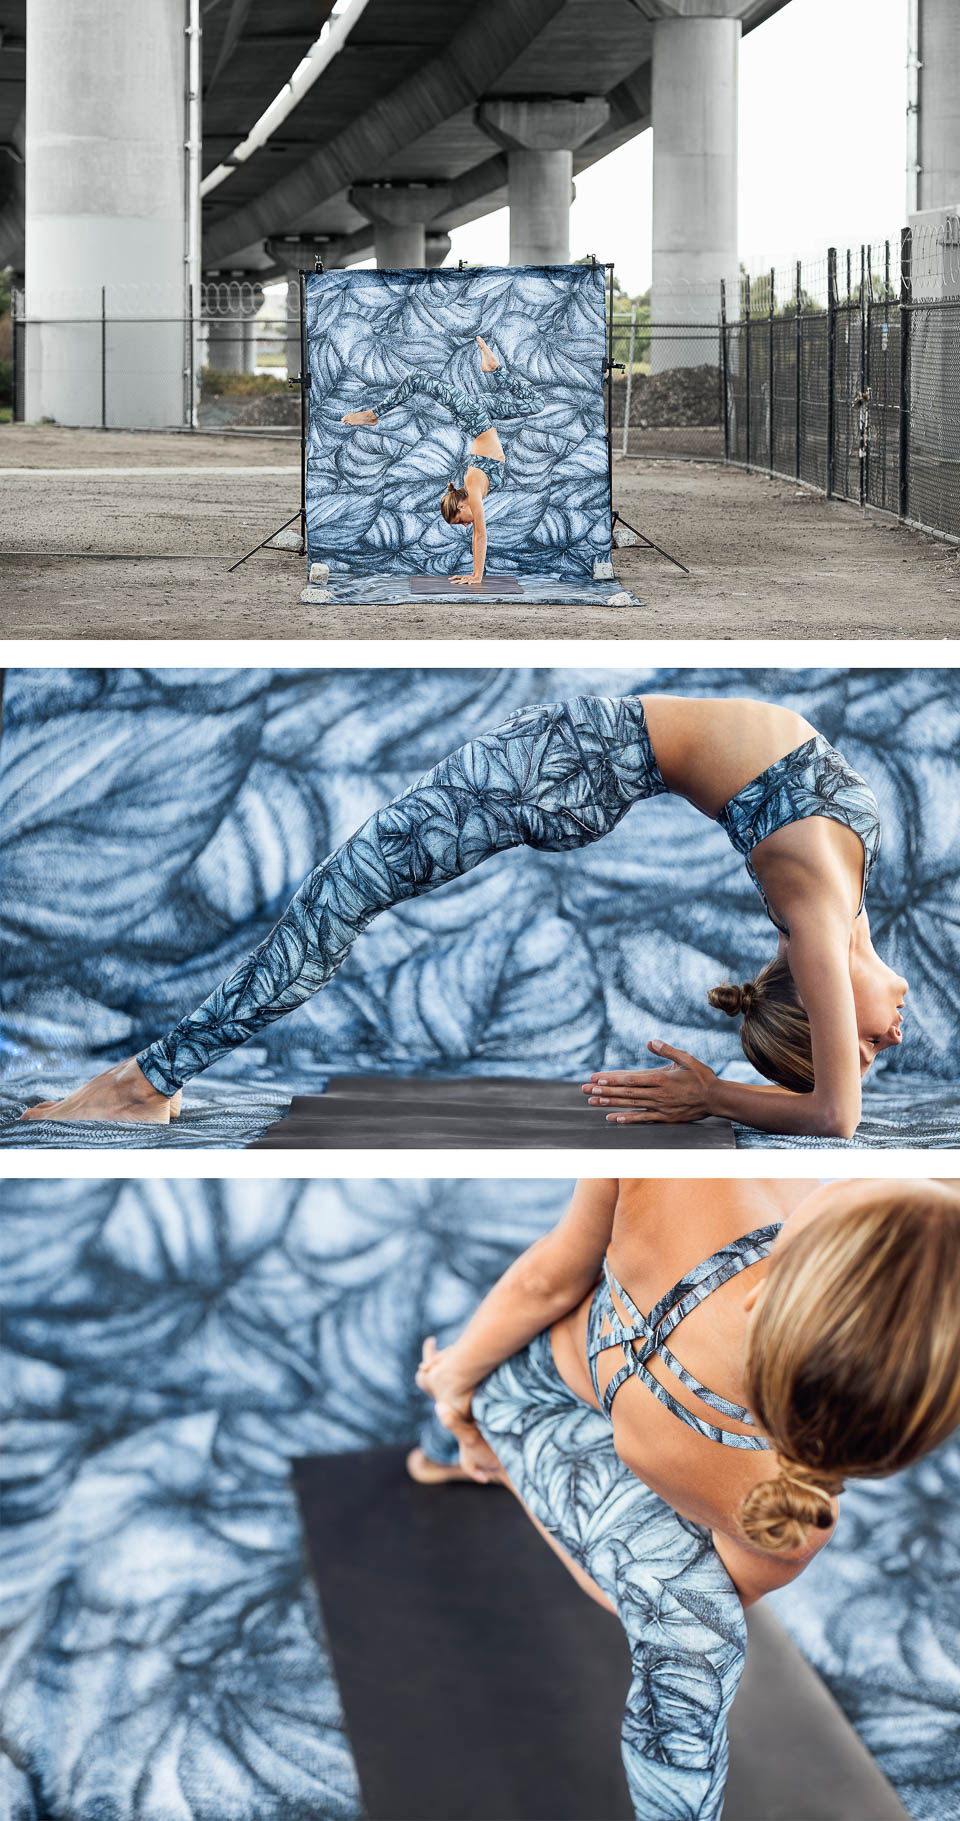 LULU_WEB_2017_Q1_MK_AUTUMN_wk06_w_1490_Concrete_Jungle_Yoga-Edit-960px.jpg